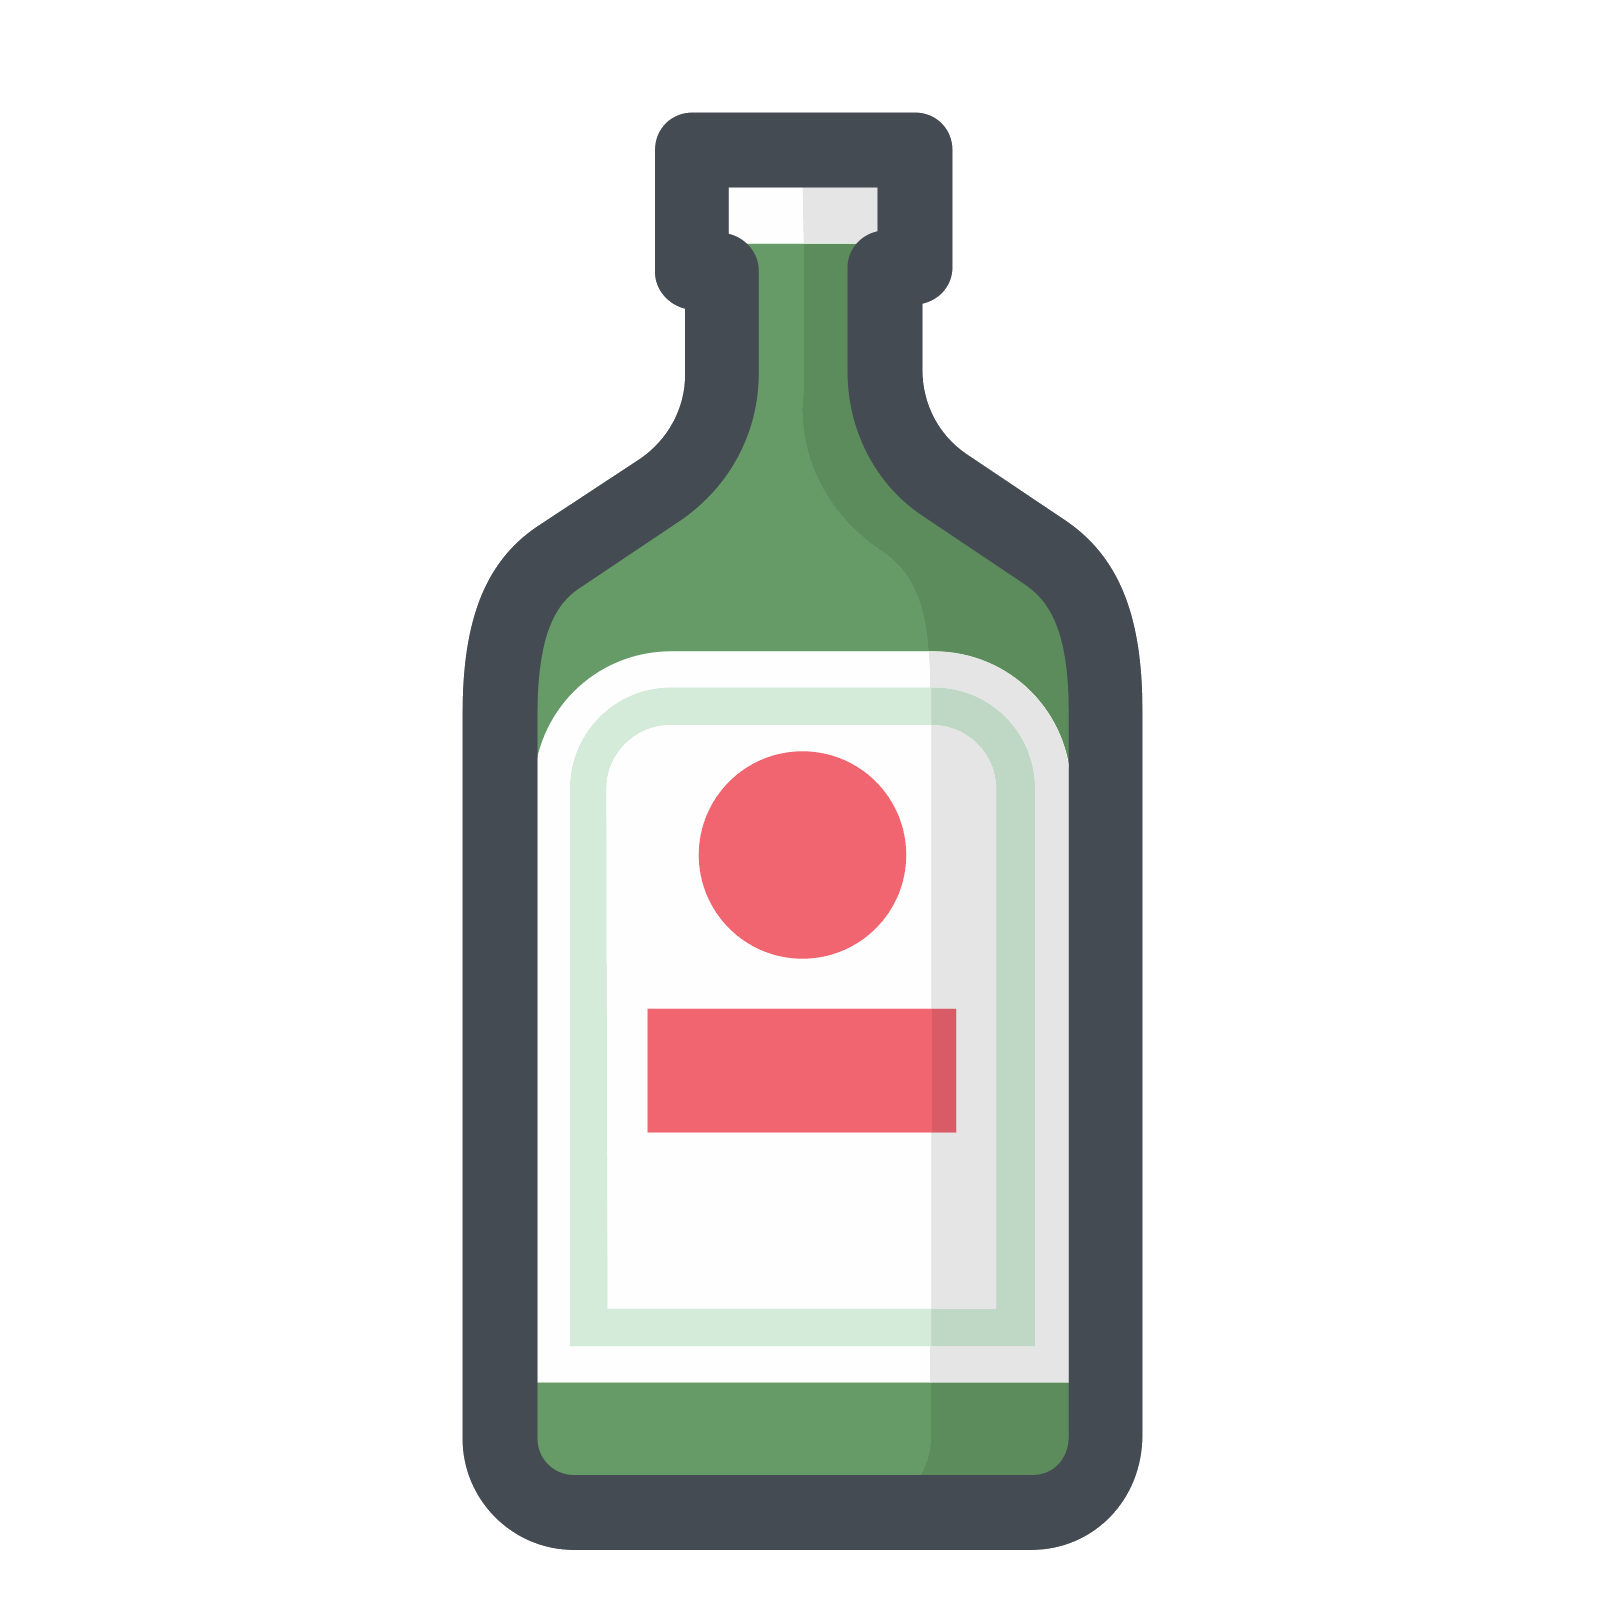 Vector shot bottle. Drinks icon pack png